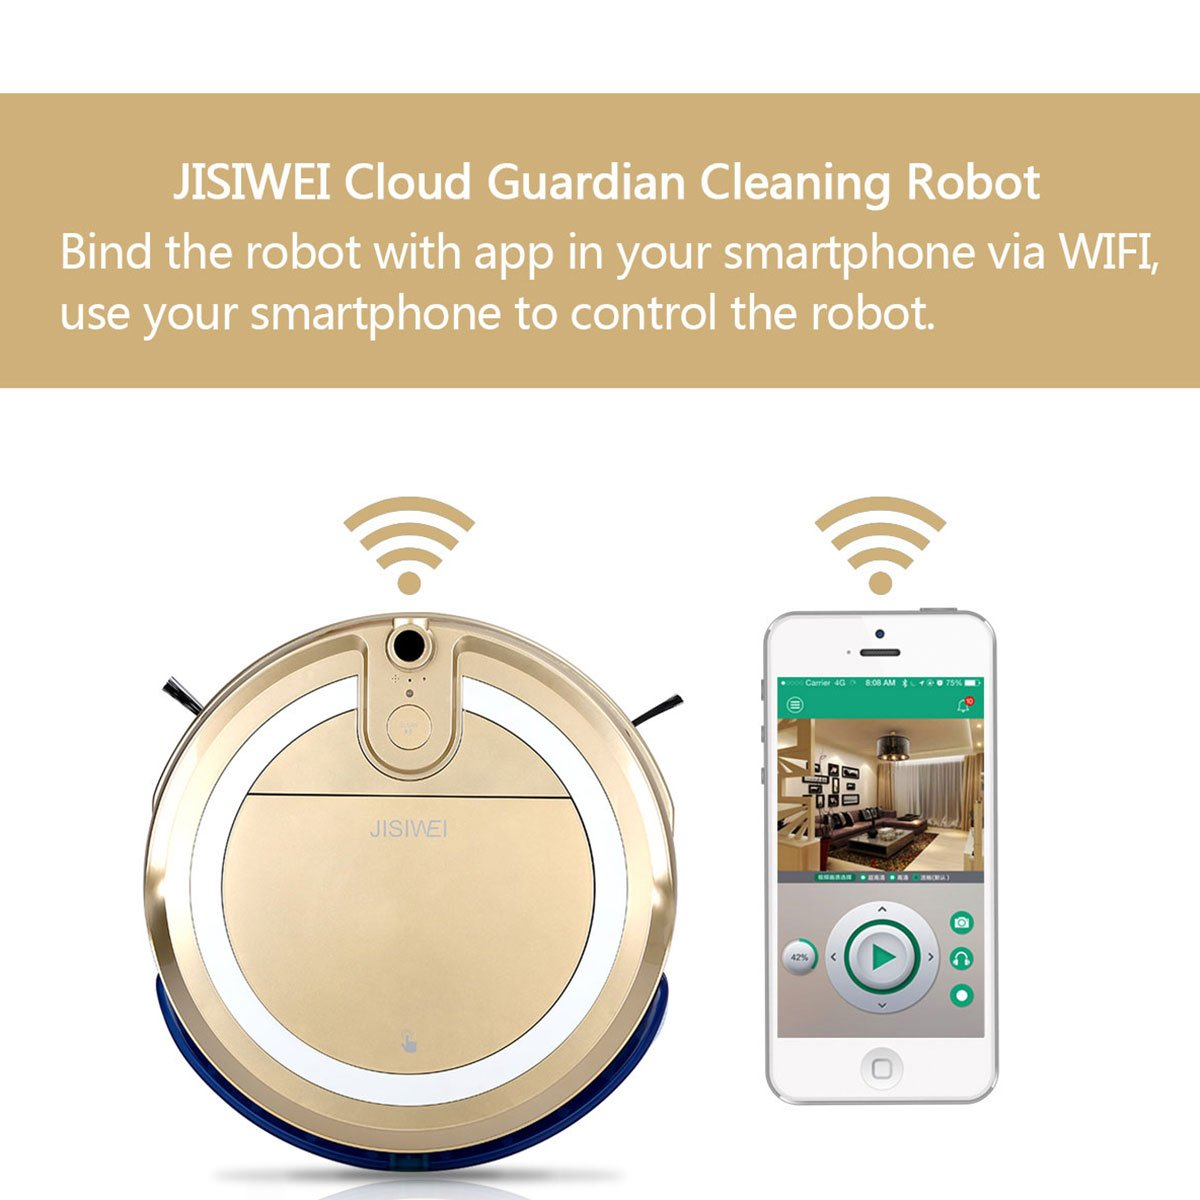 JISIWEI i3 Robot aspirador automático limpiador con cámara HD integrada Application mando a distancia para Smartphone Android y iOS - dorado: Amazon.es: ...